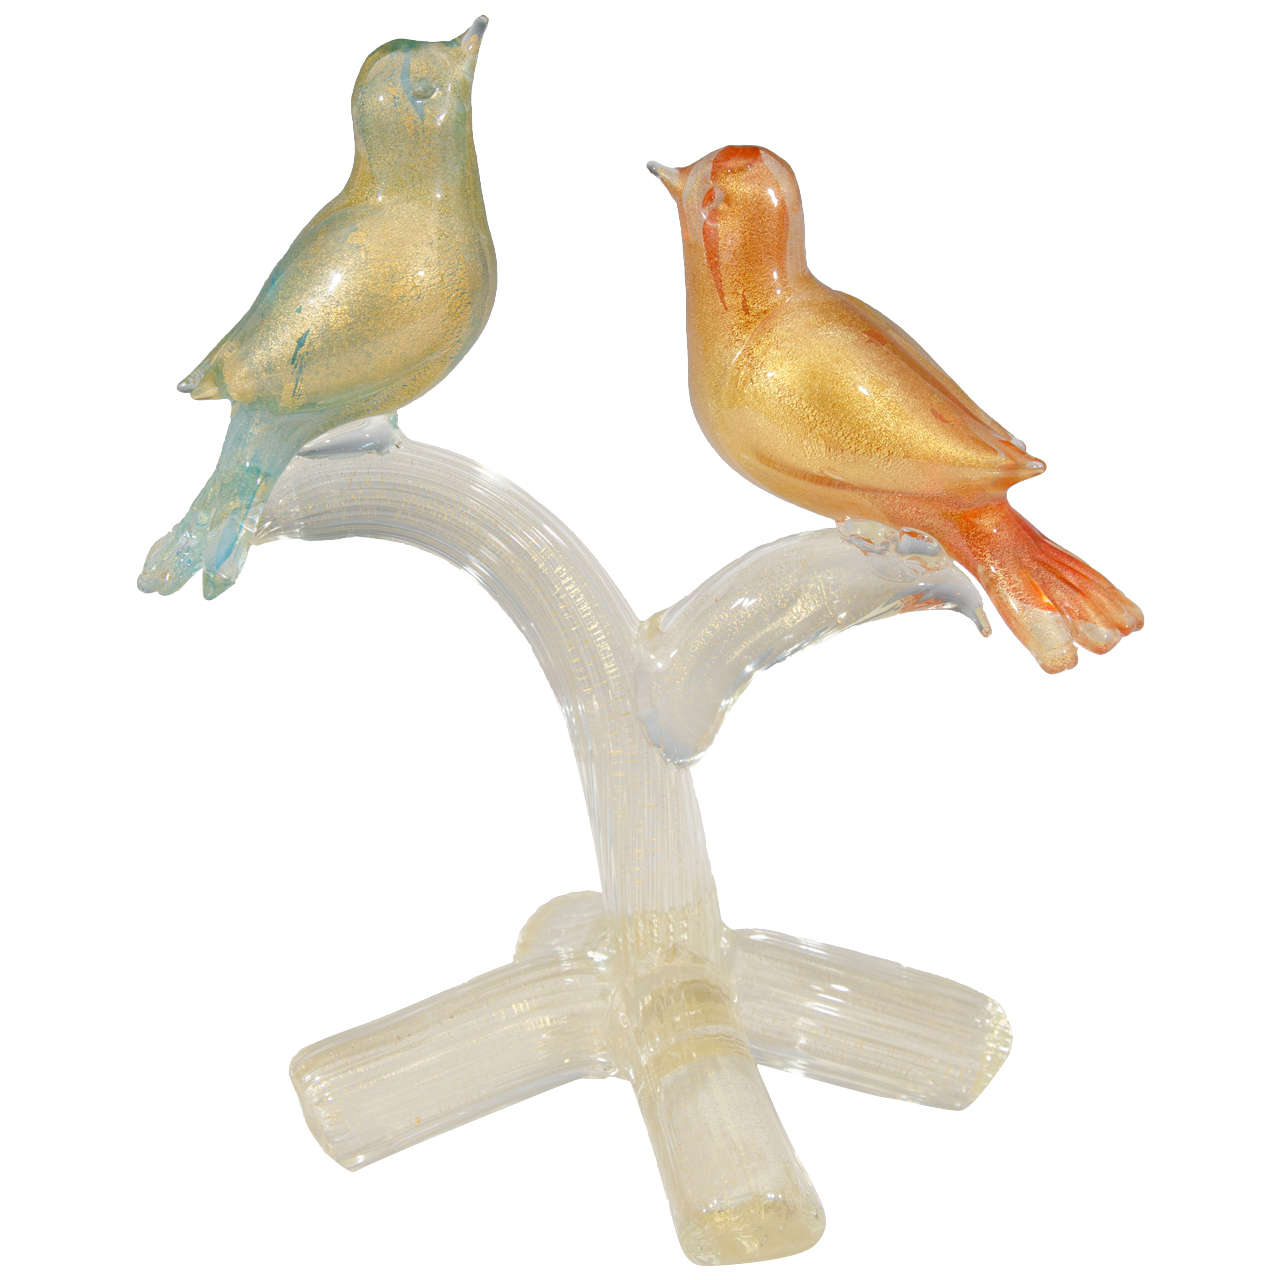 Midcentury Formia Murano Glass Sculpture of Birds For Sale